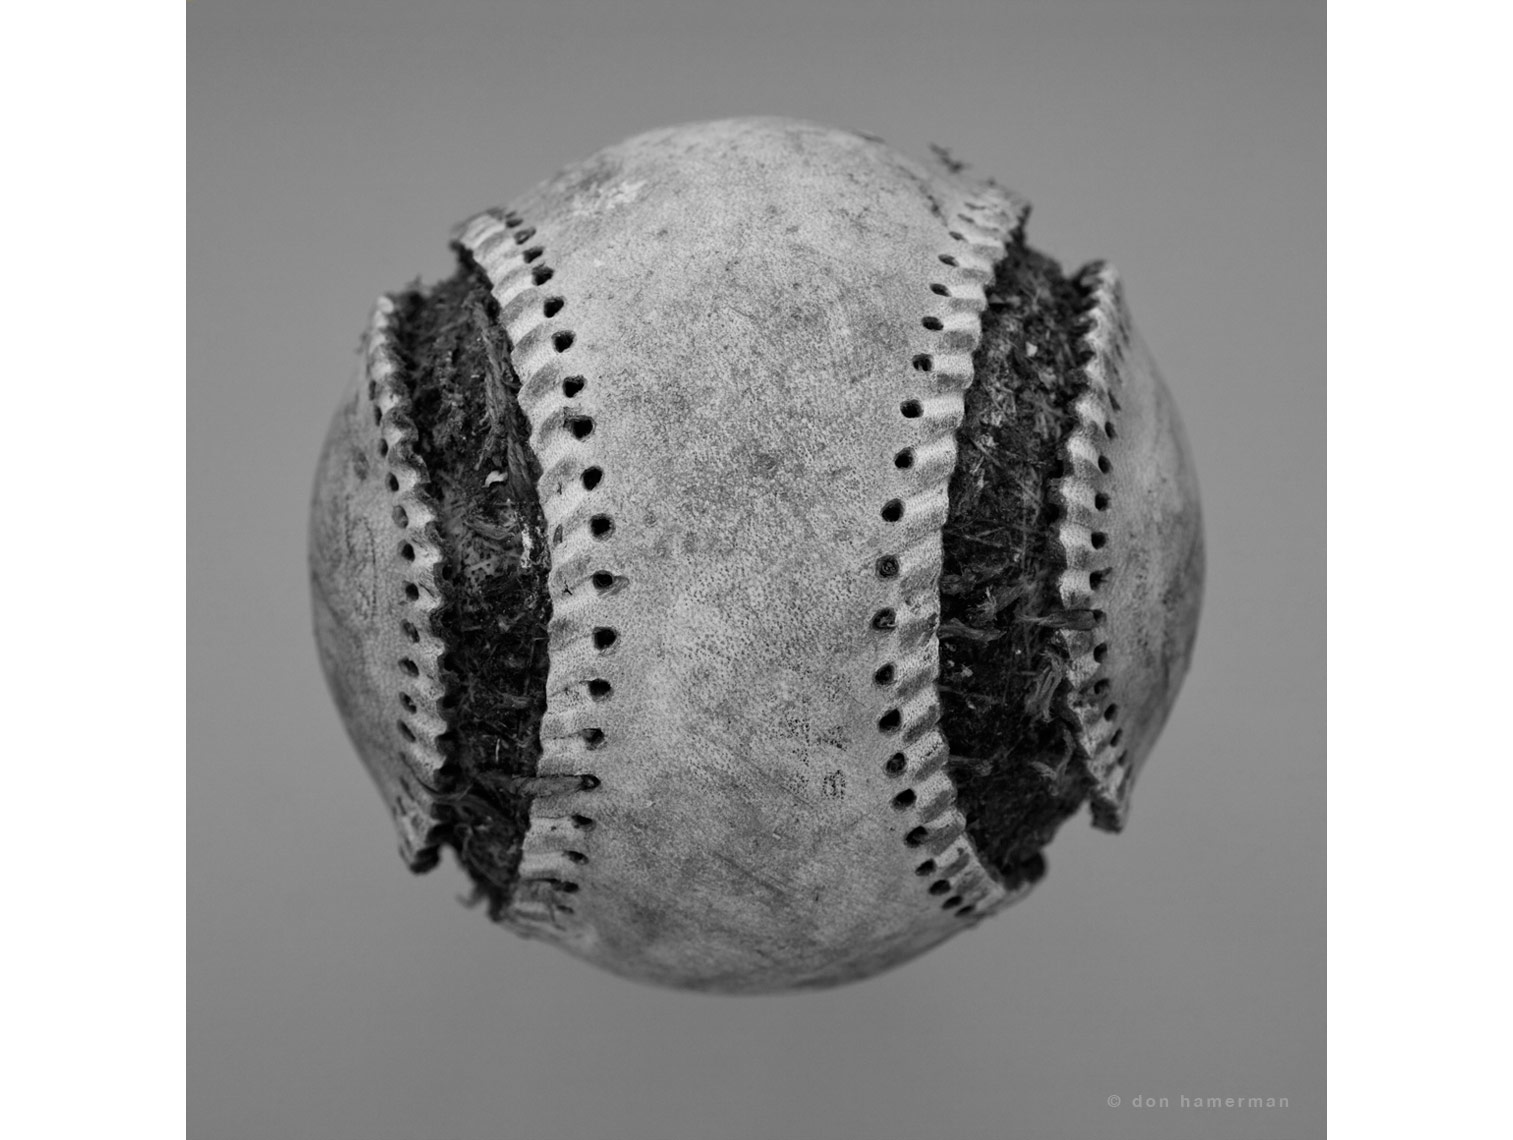 Don Hamerman Baseball Portrait - Fine Art Print